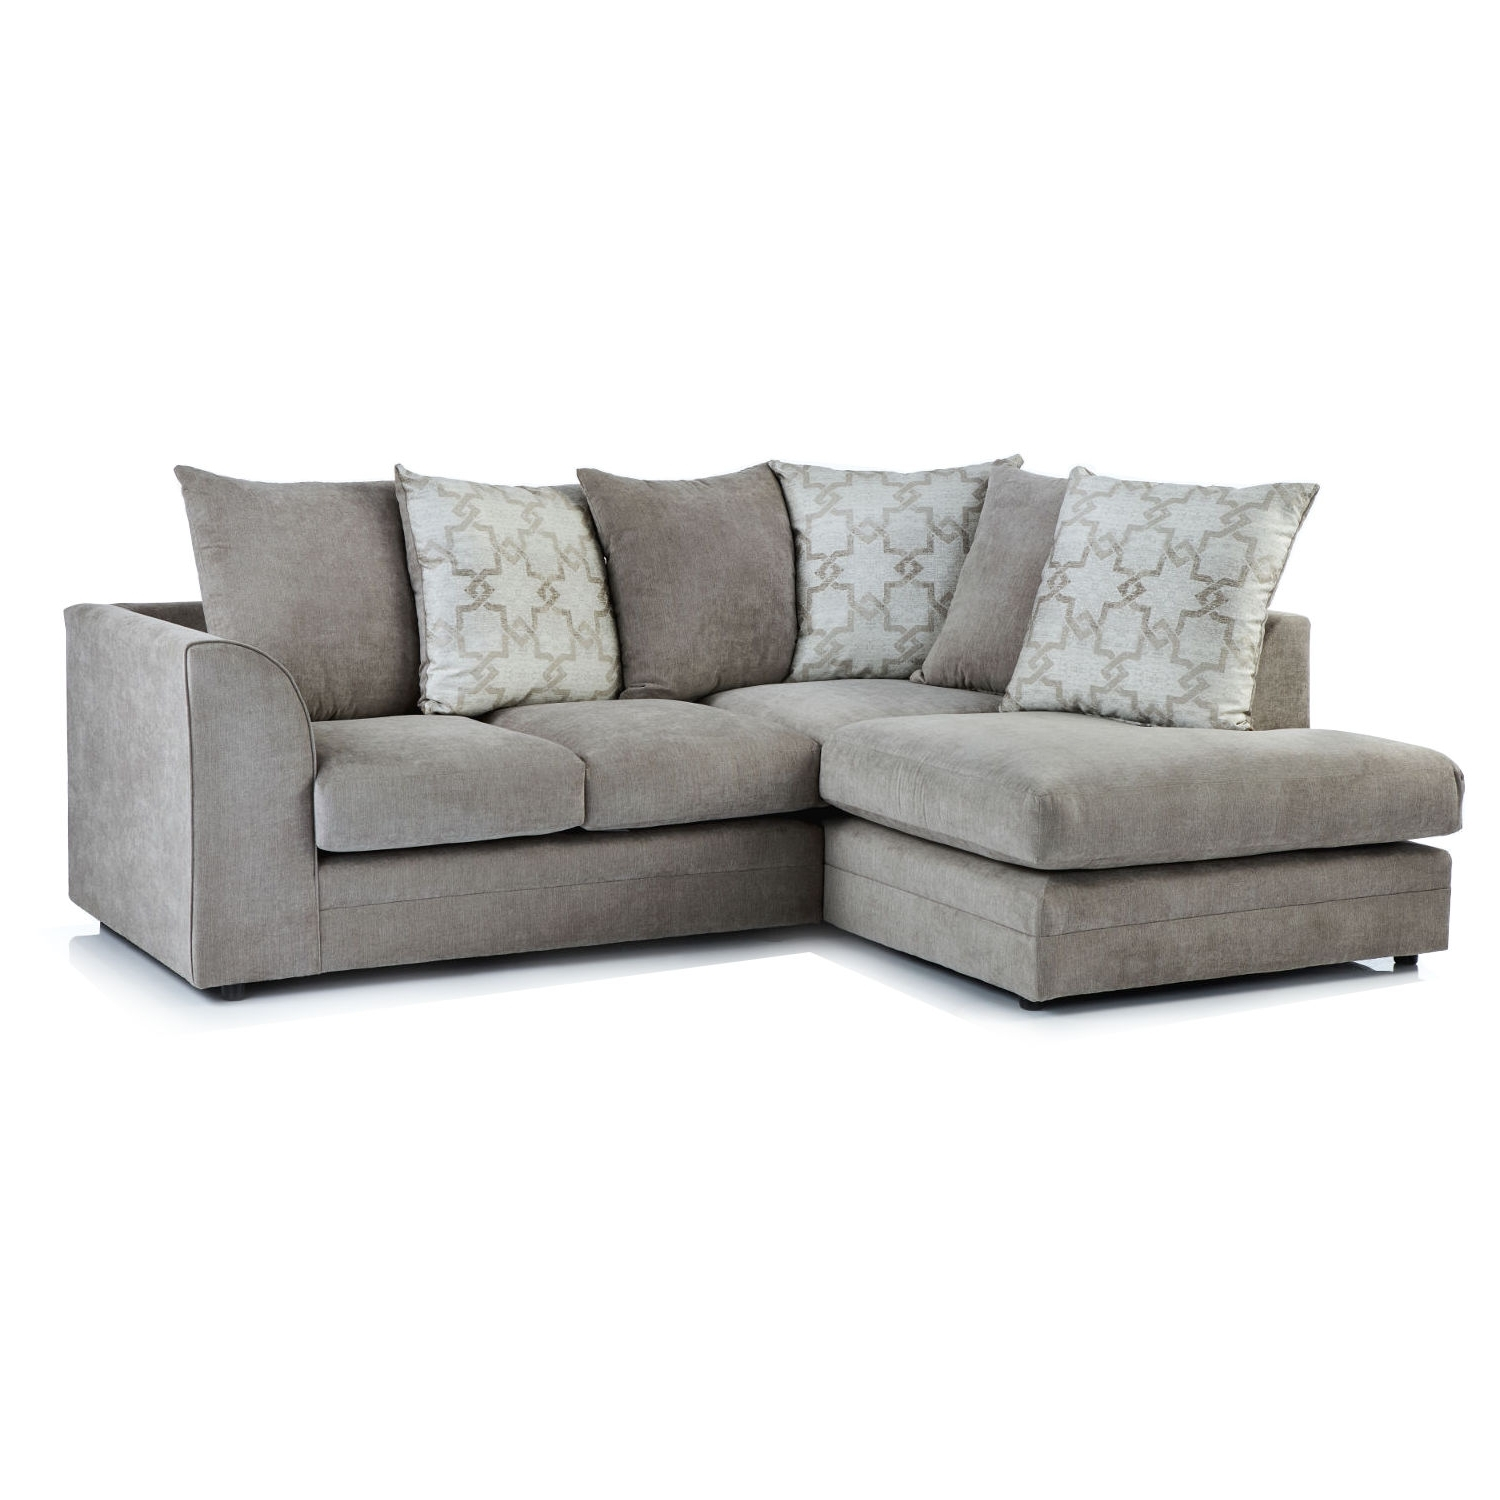 Well Liked Chaise Sofas With Washington Fabric Corner Chaise Sofa – Next Day Delivery (View 5 of 15)